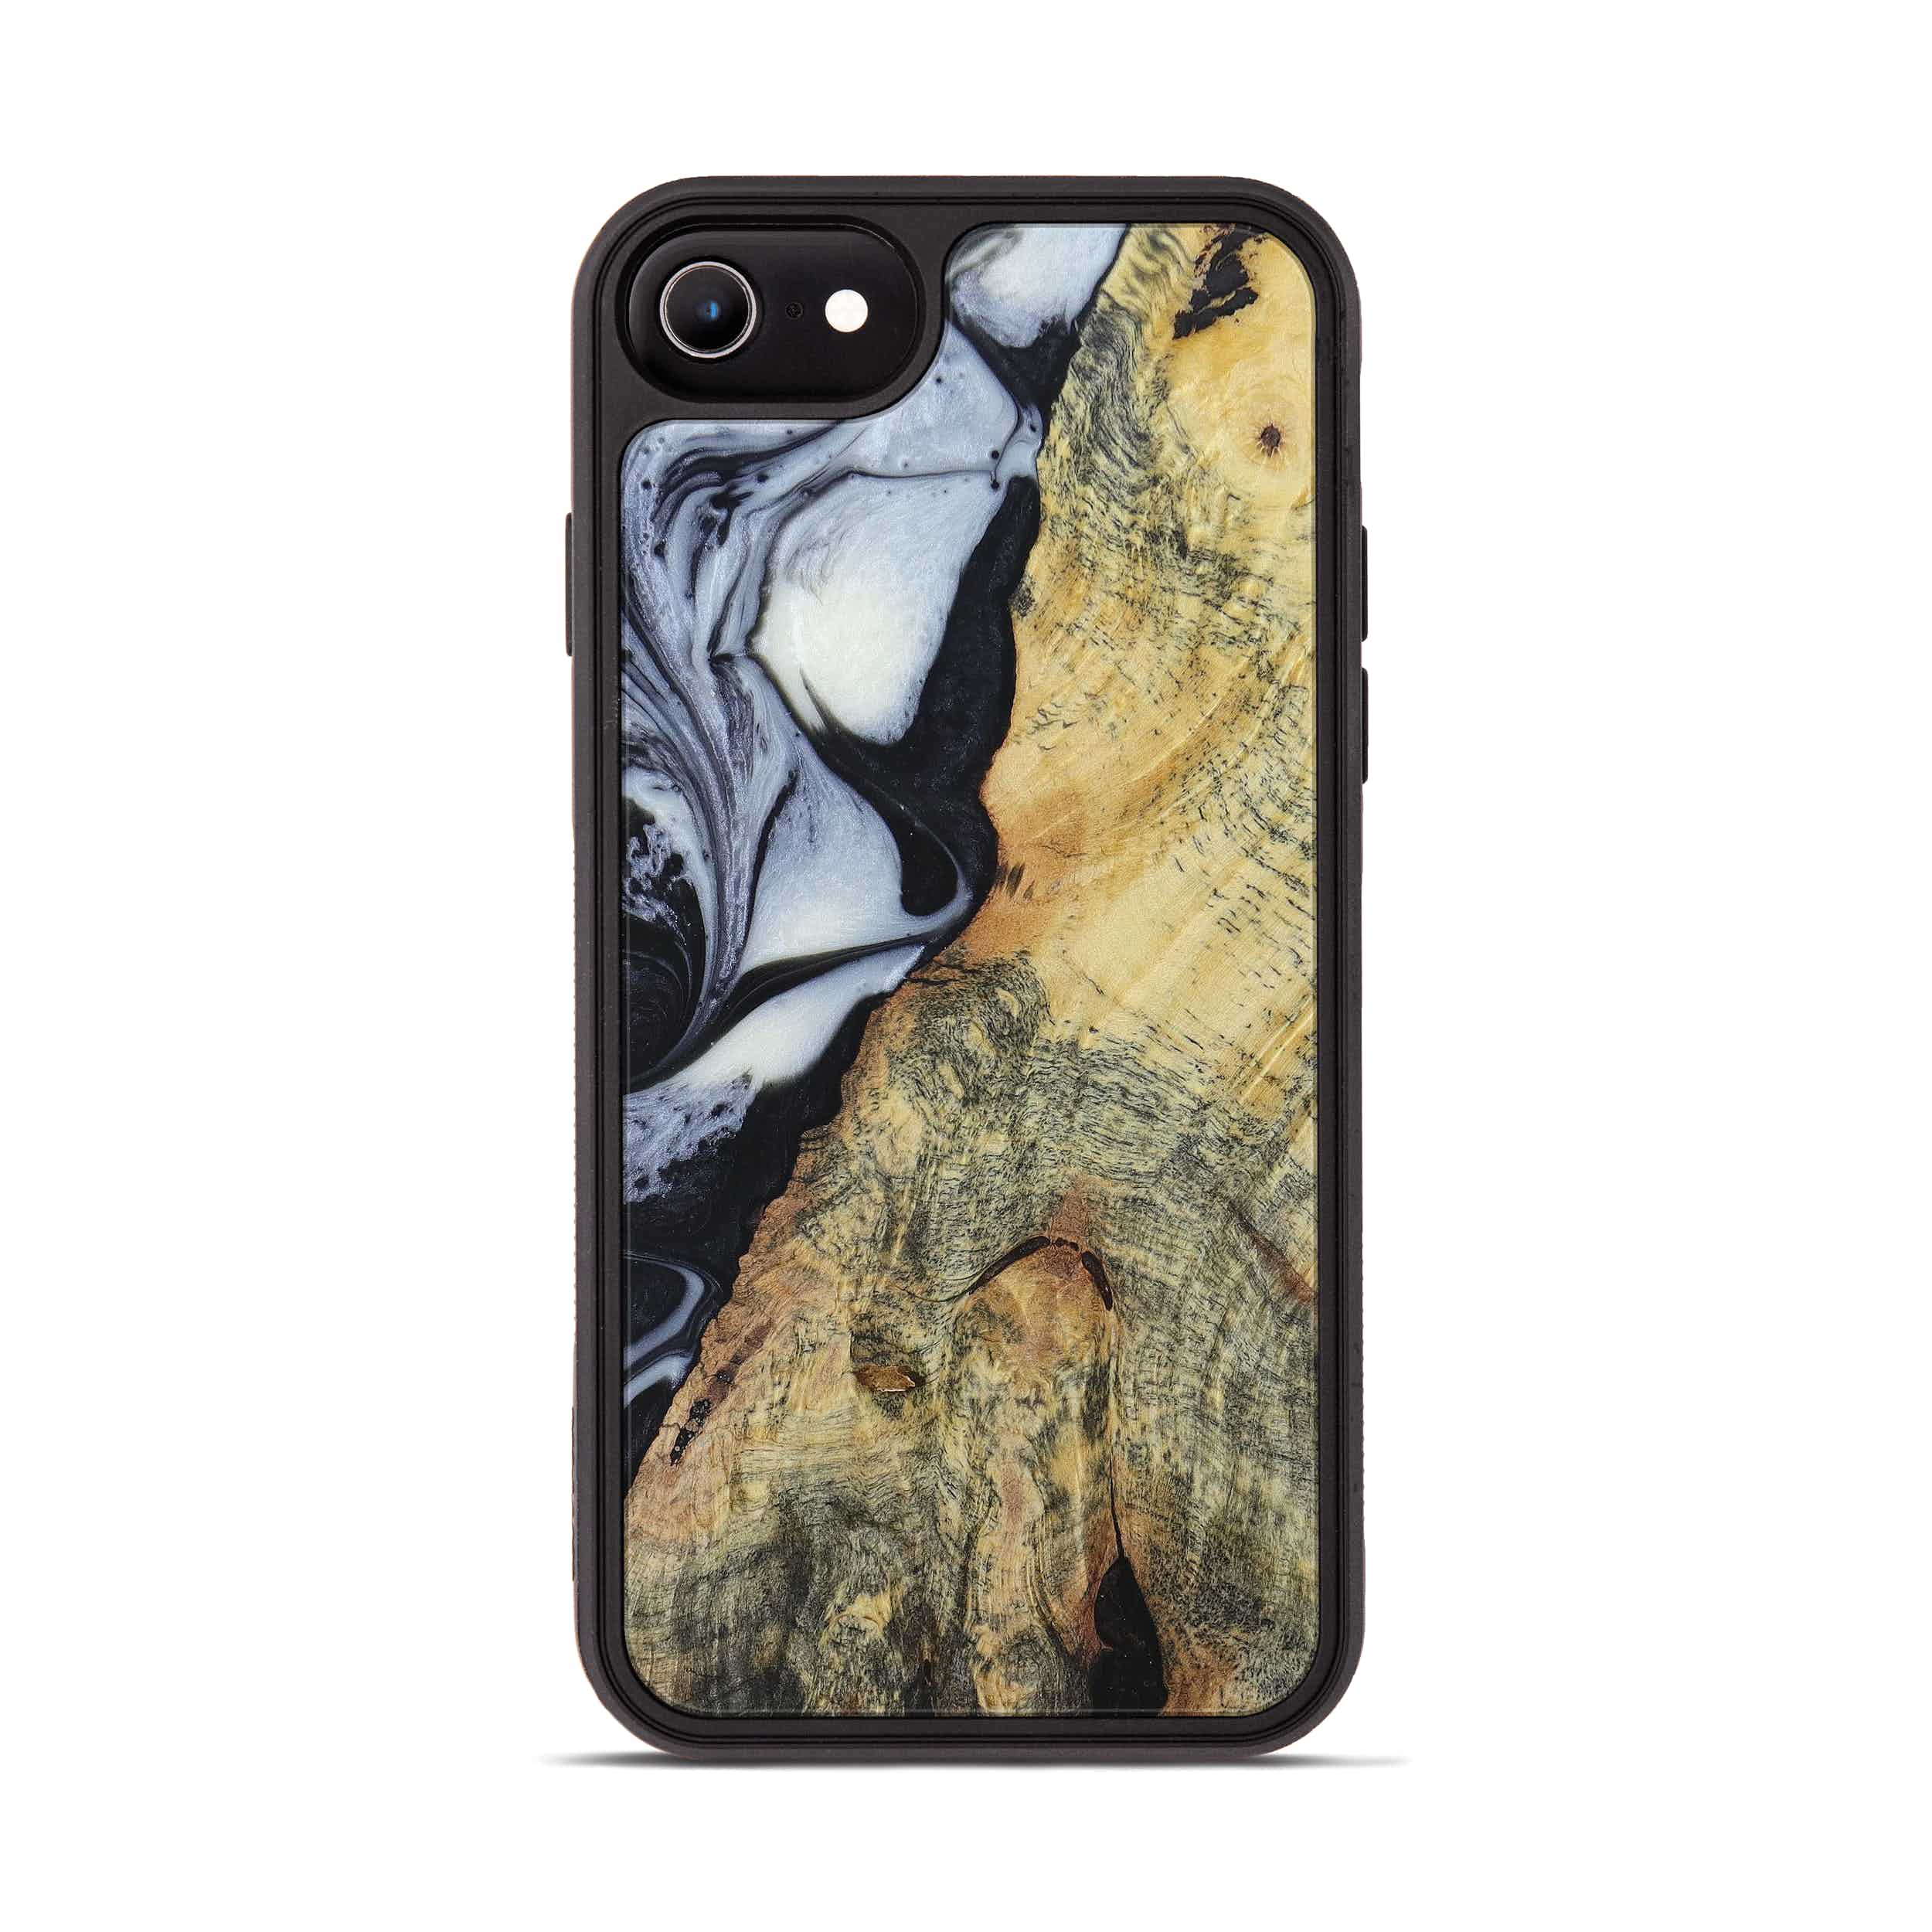 iPhone 6s Wood+Resin Phone Case - Buford (Black & White, 397920)